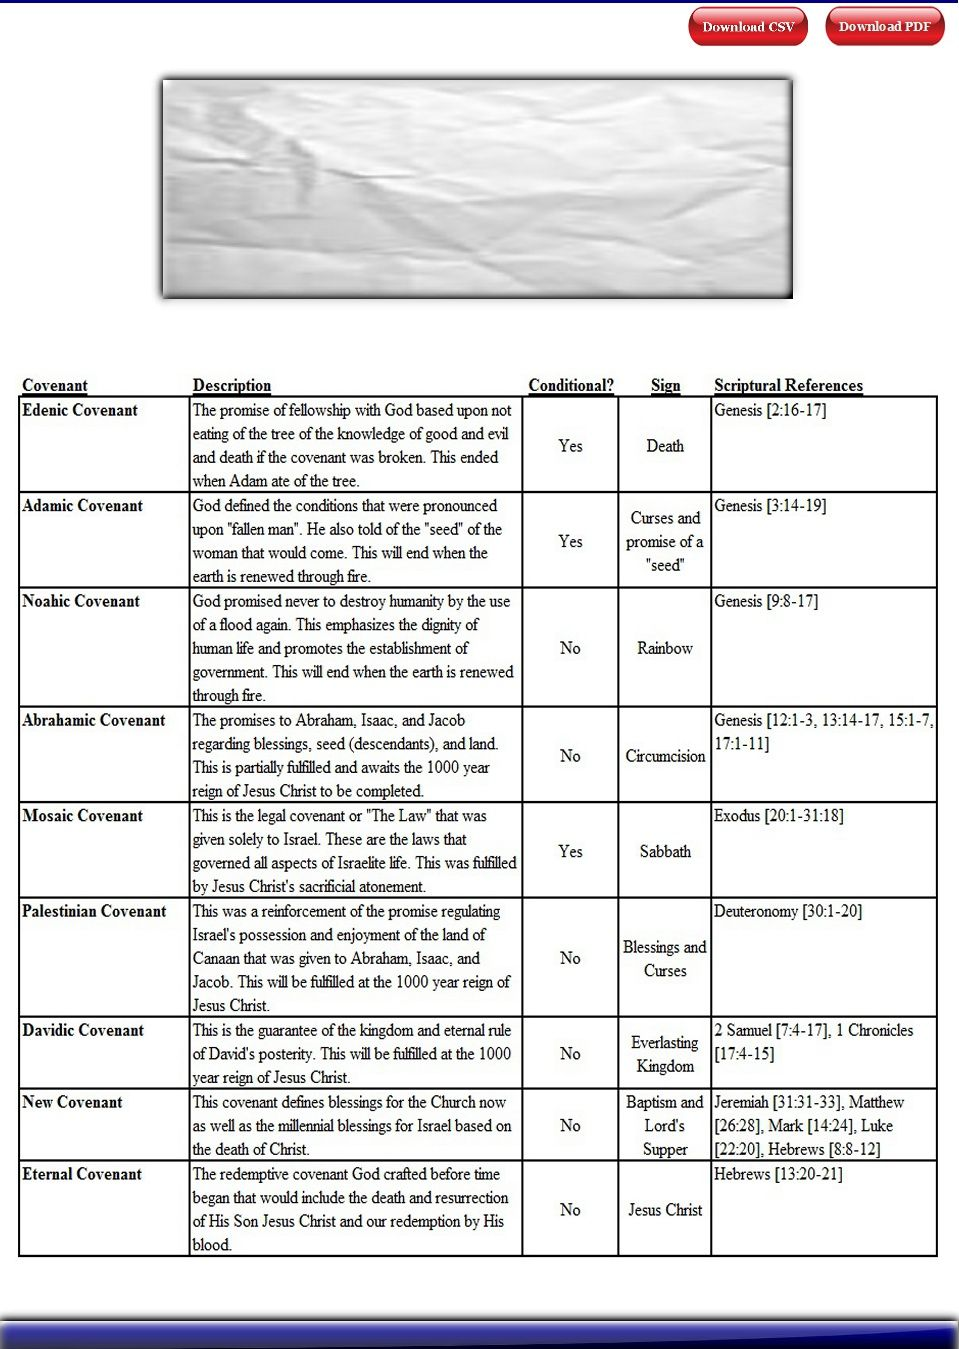 Biblical Covenants   Chart of Covenants Made Between God and